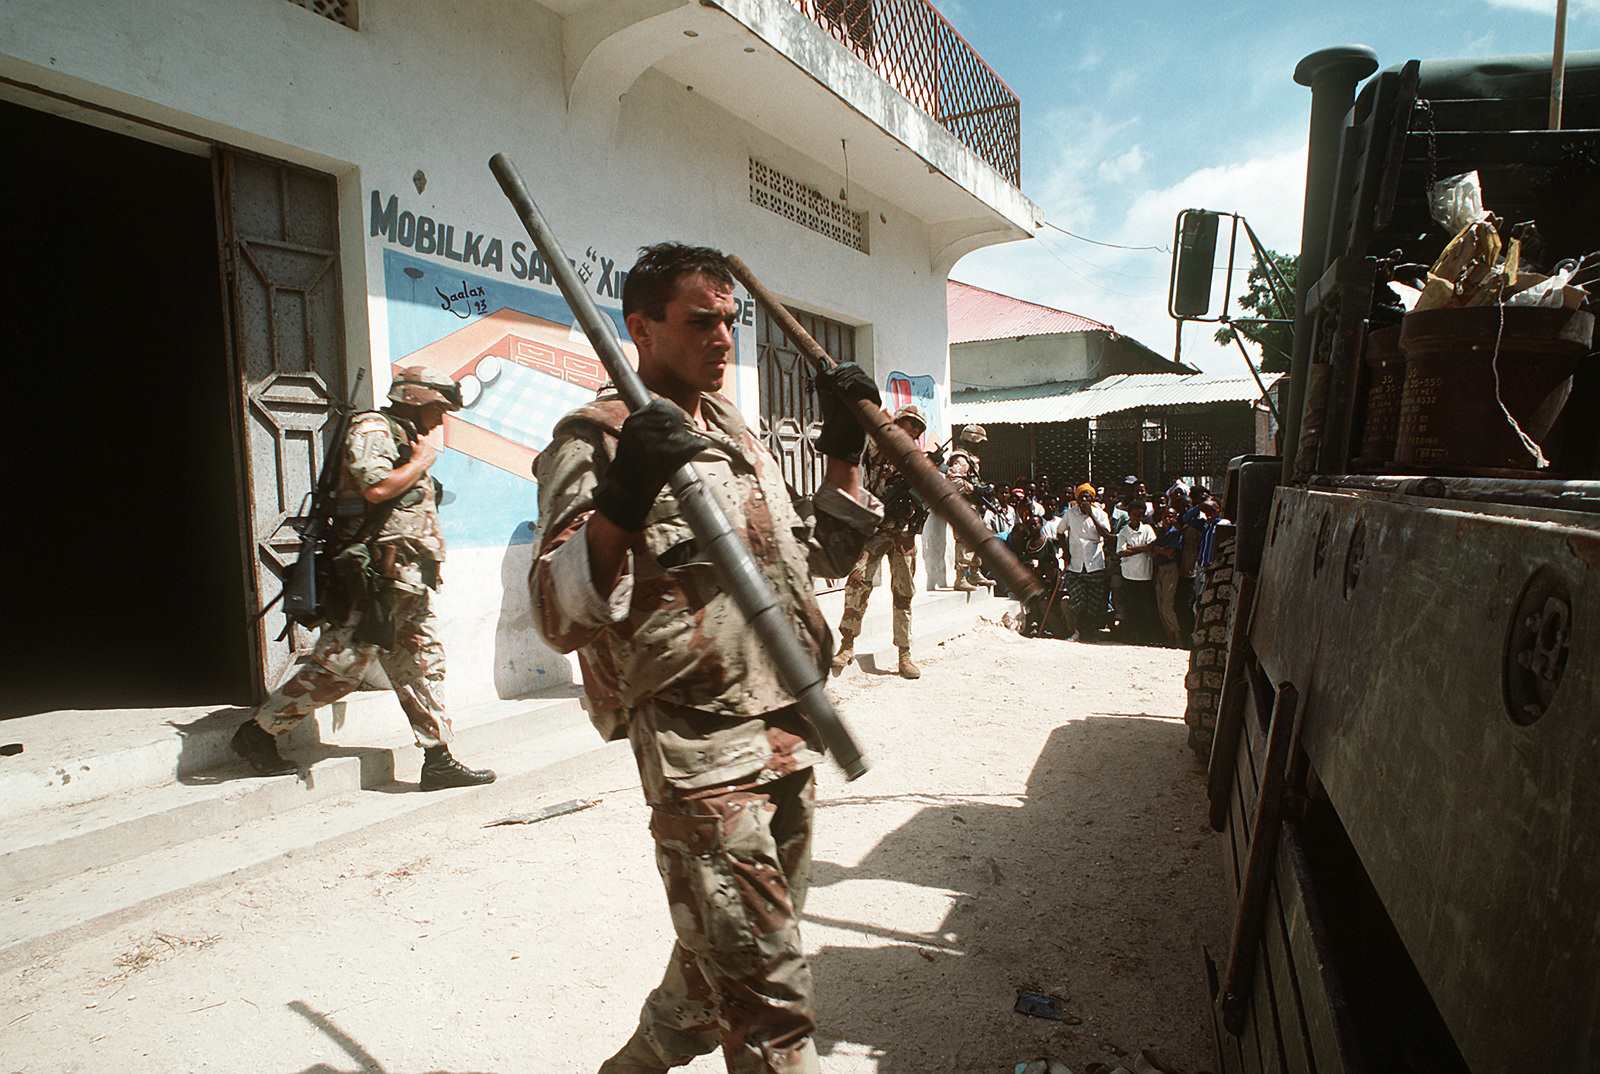 A Marine carries machine gun barrels confiscated during the